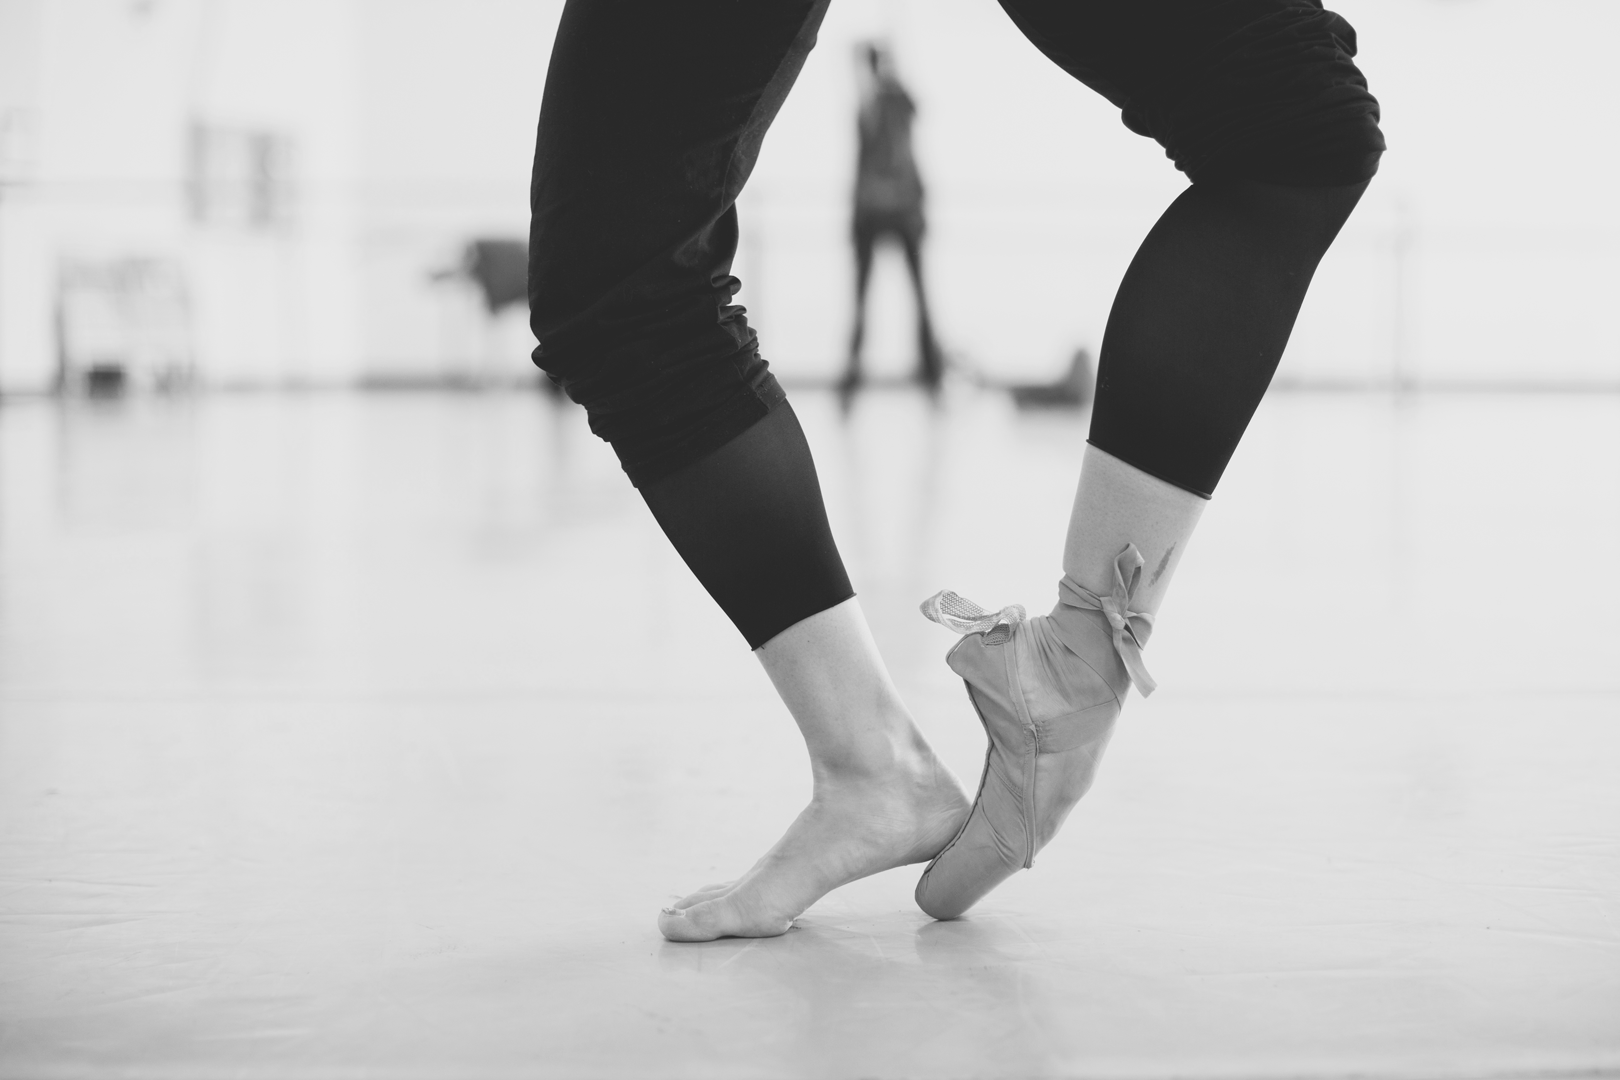 A ballerina practices on pointe